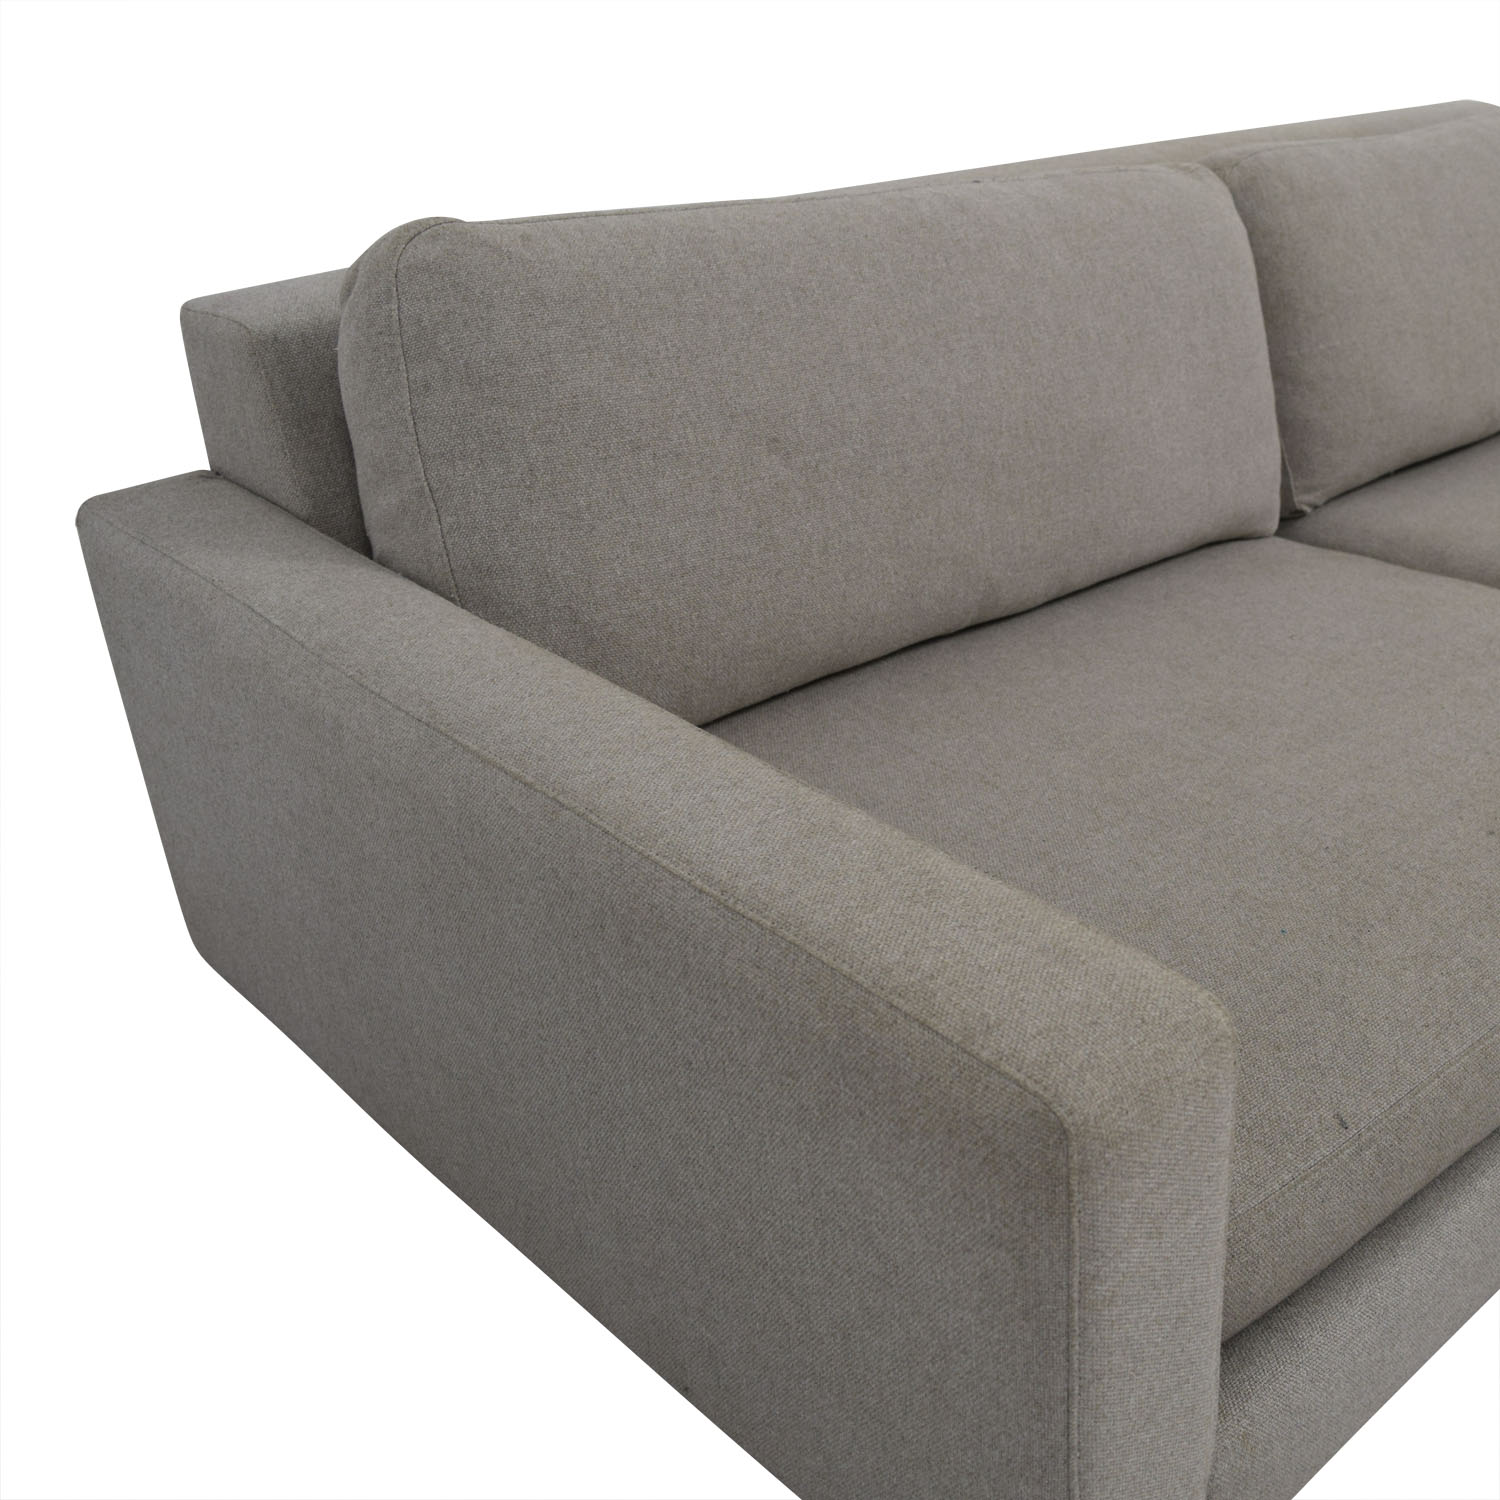 room and board hess sofa review con chaise longue baratos 88 off beige two cushion